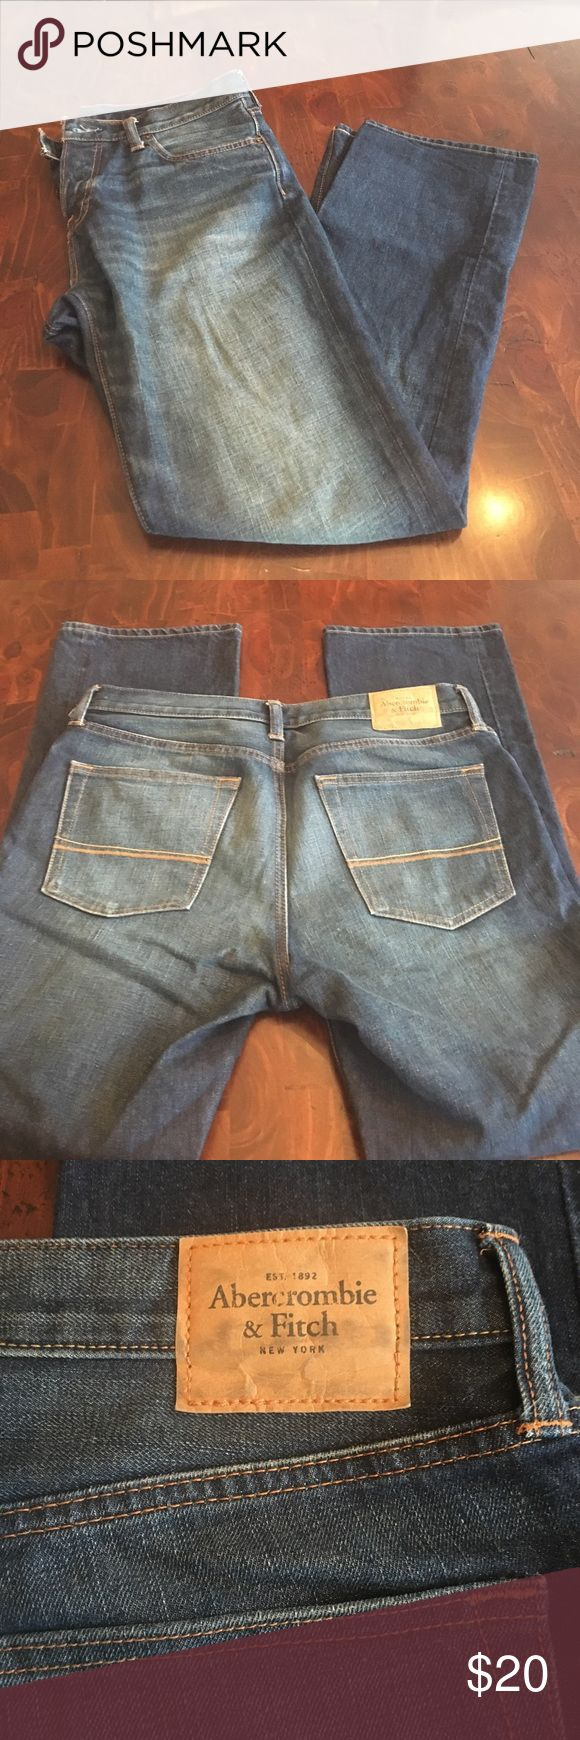 Mens Abercrombie and Fitch Jeans 32x32 Men's Abercrombie and Fitch jeans.  A&F boot style.  Size 32x32. Dark wash.  Button fly. Jeans are in good shape - no rips, stains or holes. Abercrombie & Fitch Jeans Bootcut